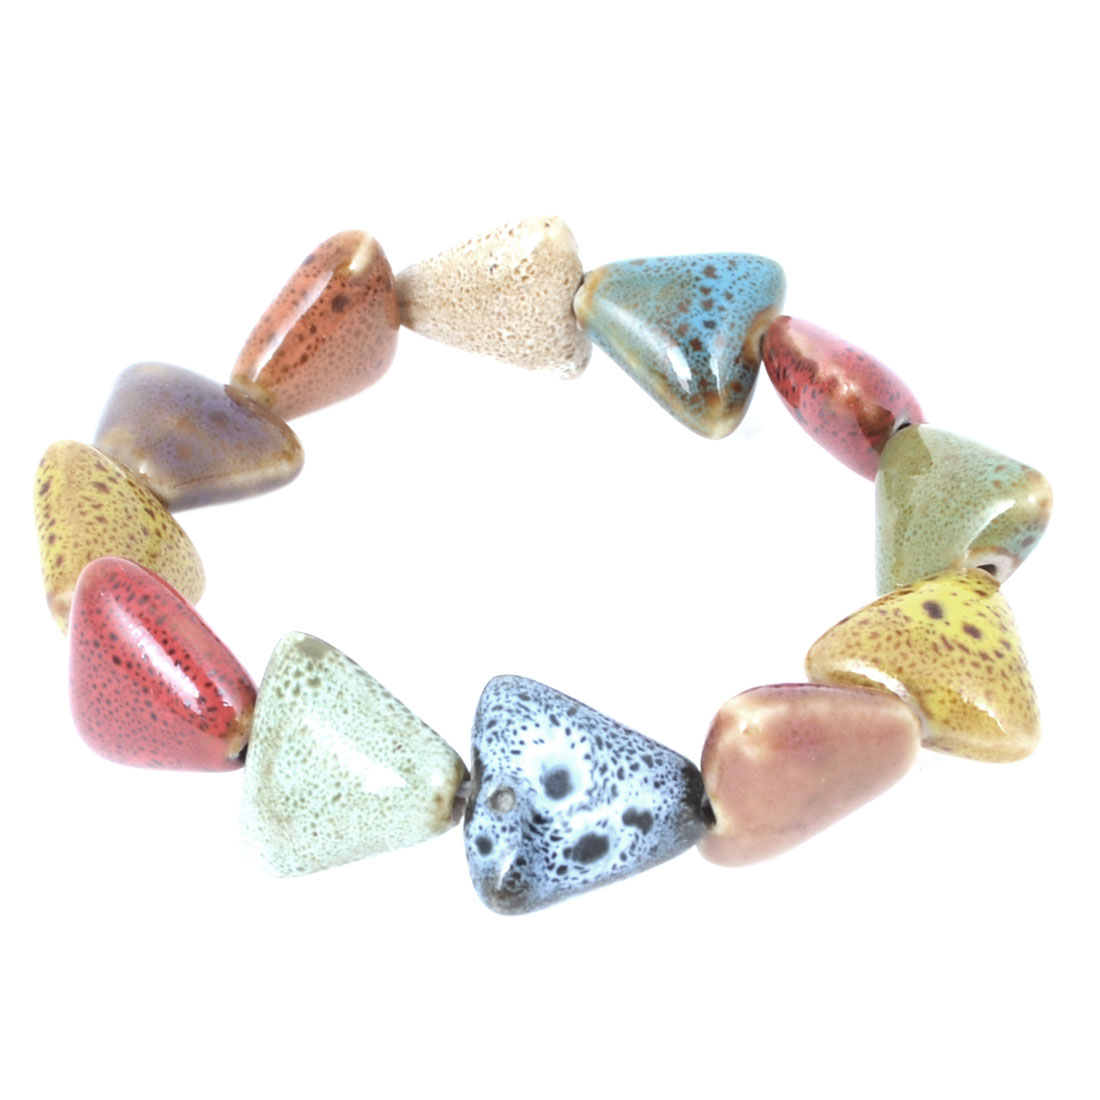 Women Triangle Shape Ceramic Beaded Elastic Bracelet Wrist Ornament Candy Color